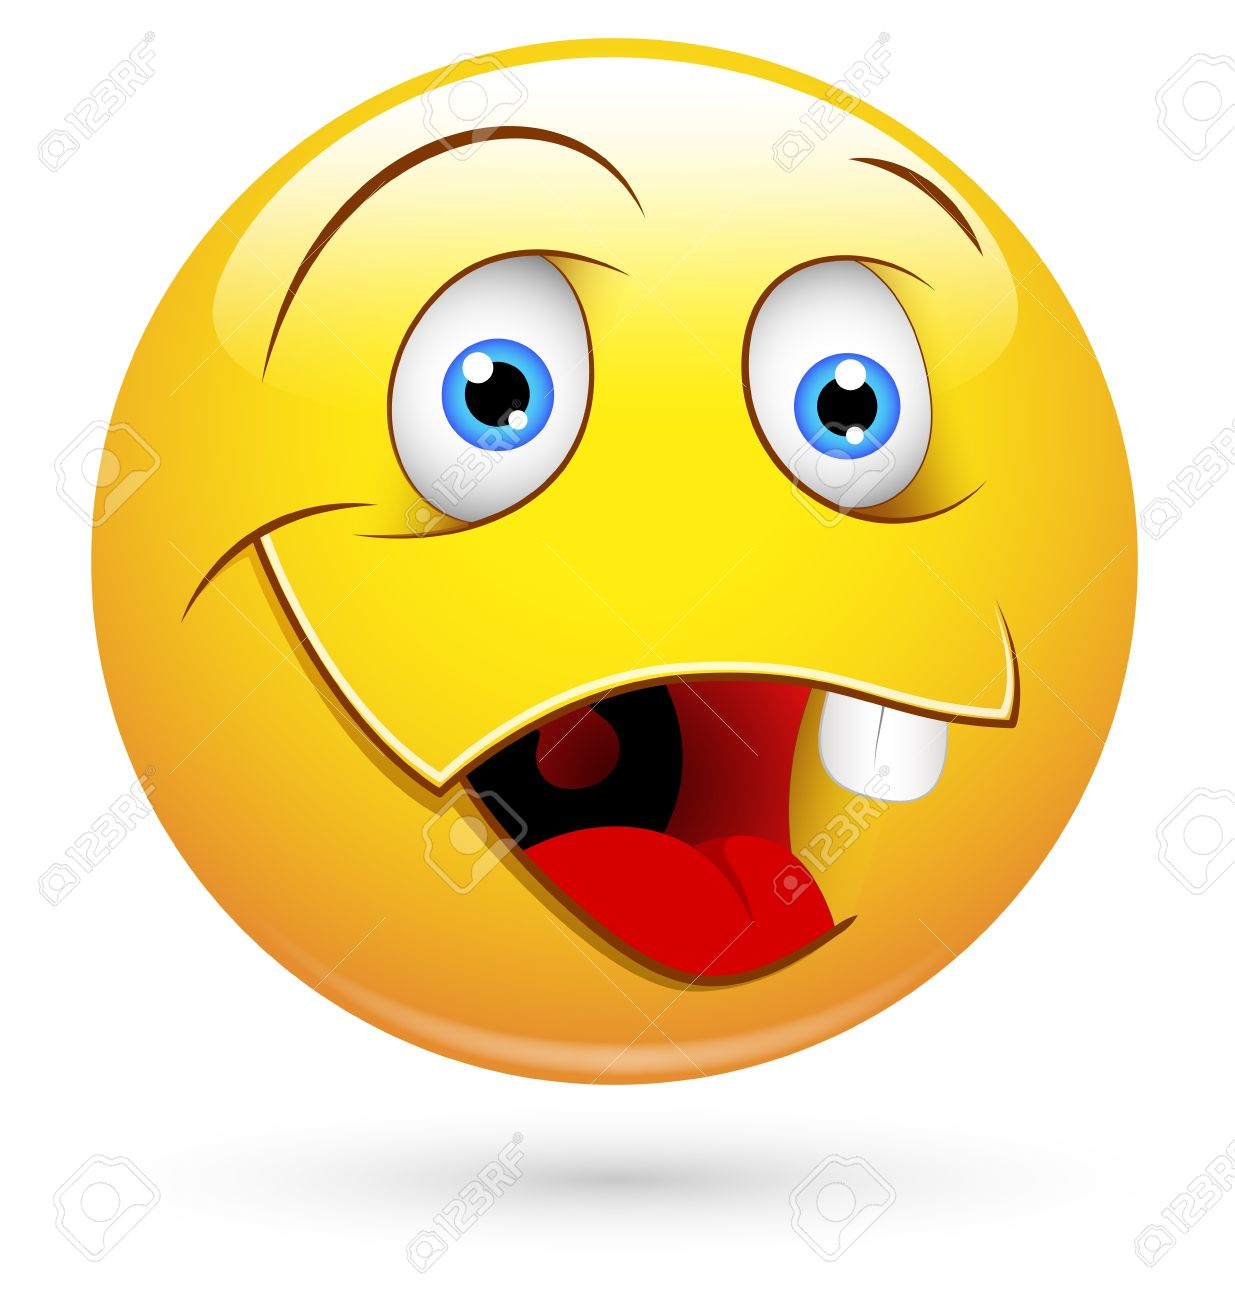 18243408-Smiley-Vector-Illustration-Dumb-Face-Stock-Vector-cartoon.jpg